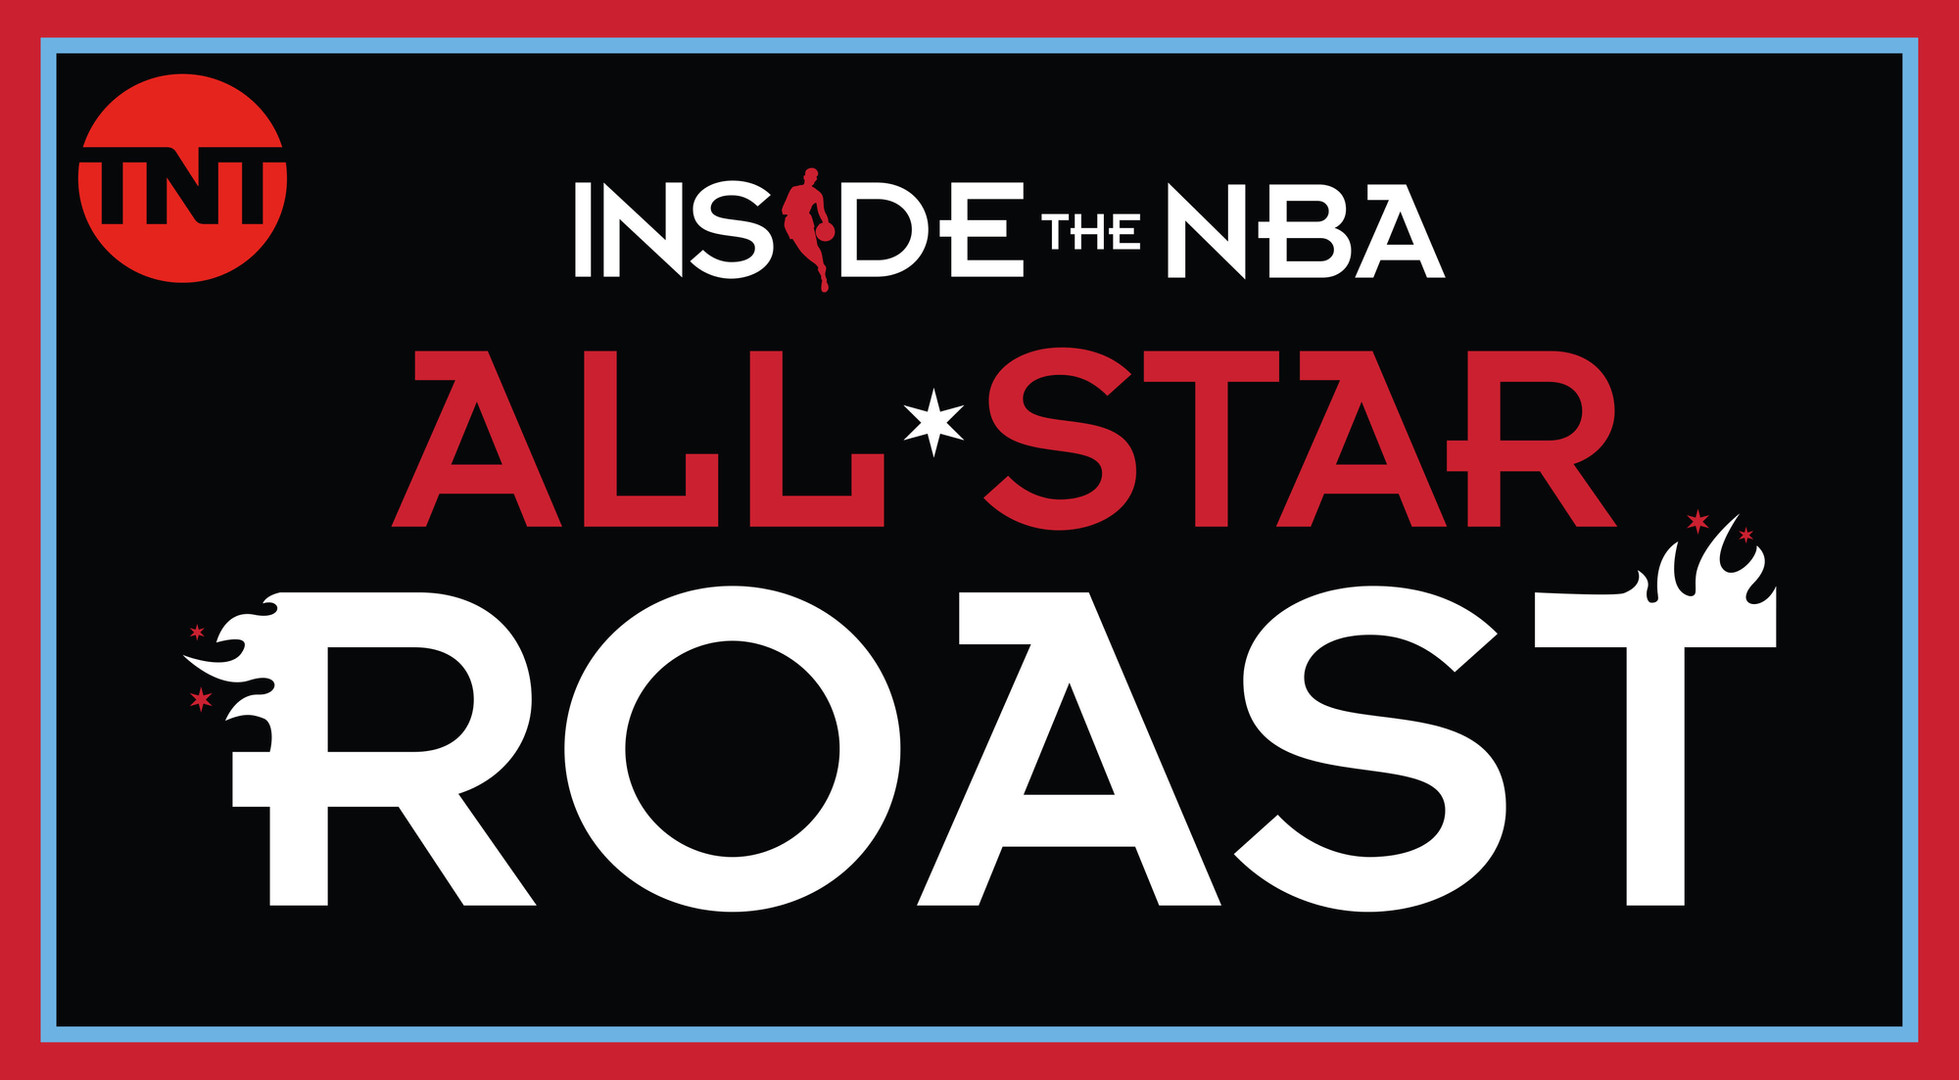 Inside the NBA All Star Roast